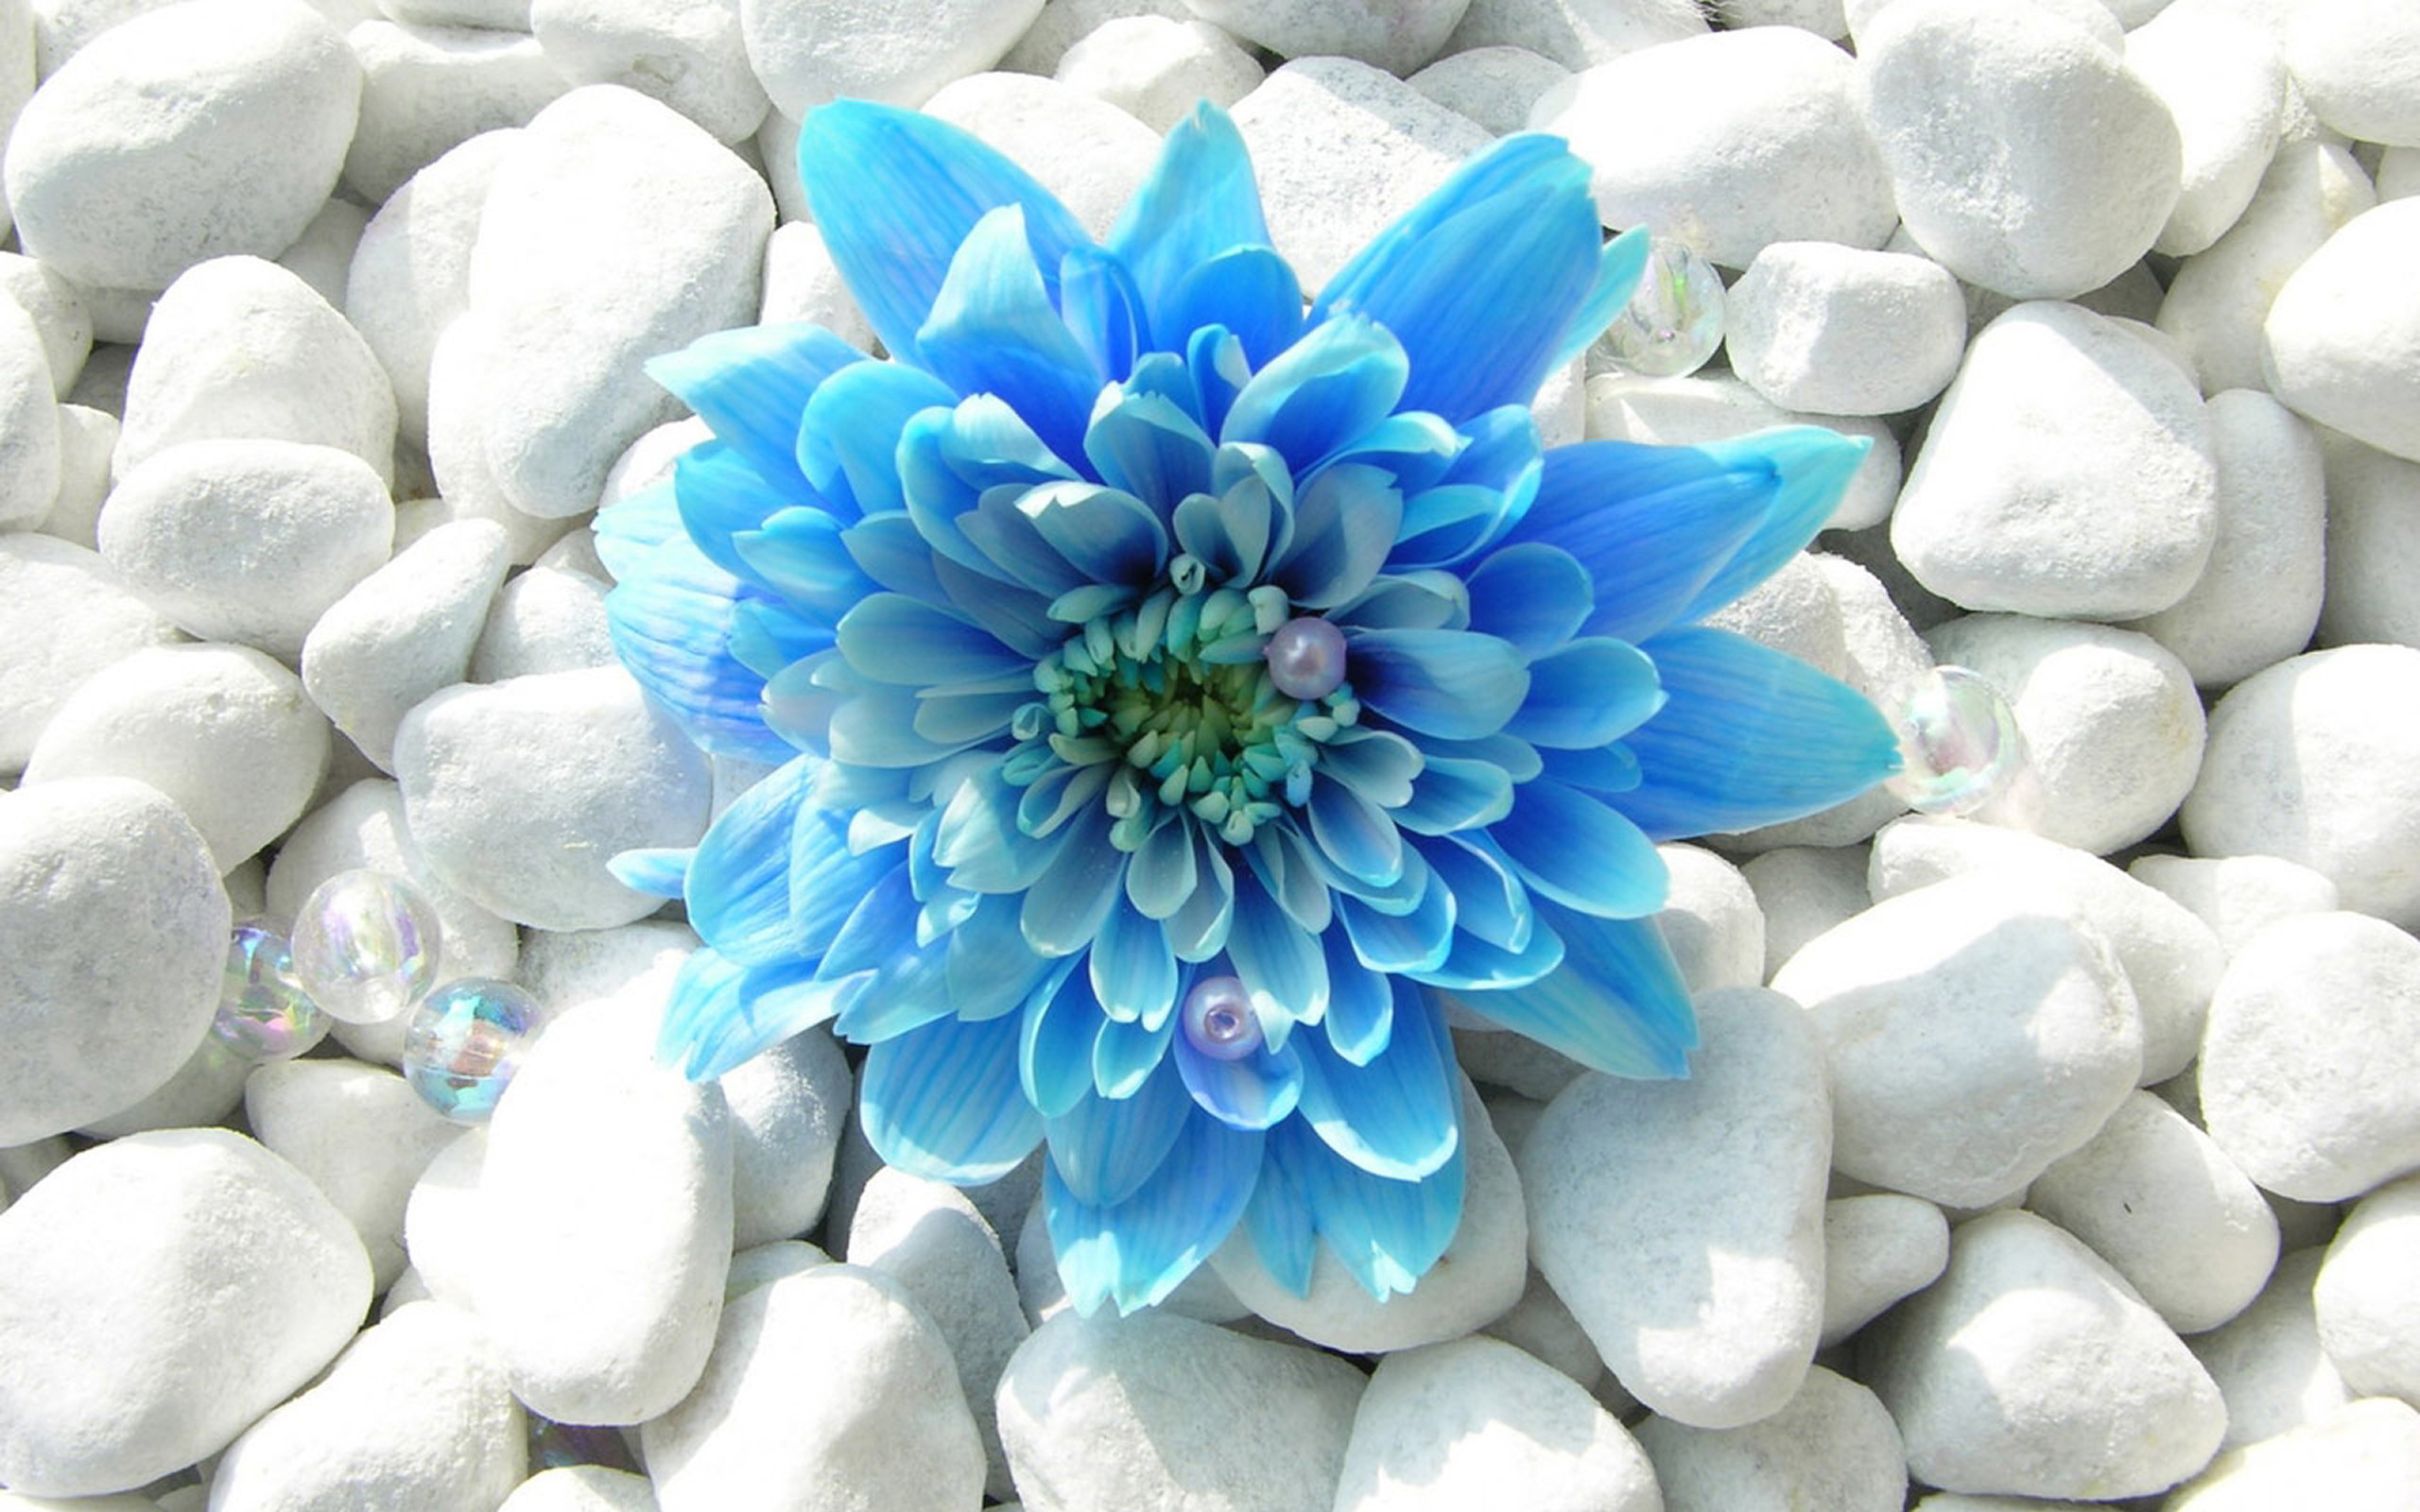 Res: 2560x1600, Blue Flower Wallpaper Background - Ndemok.com